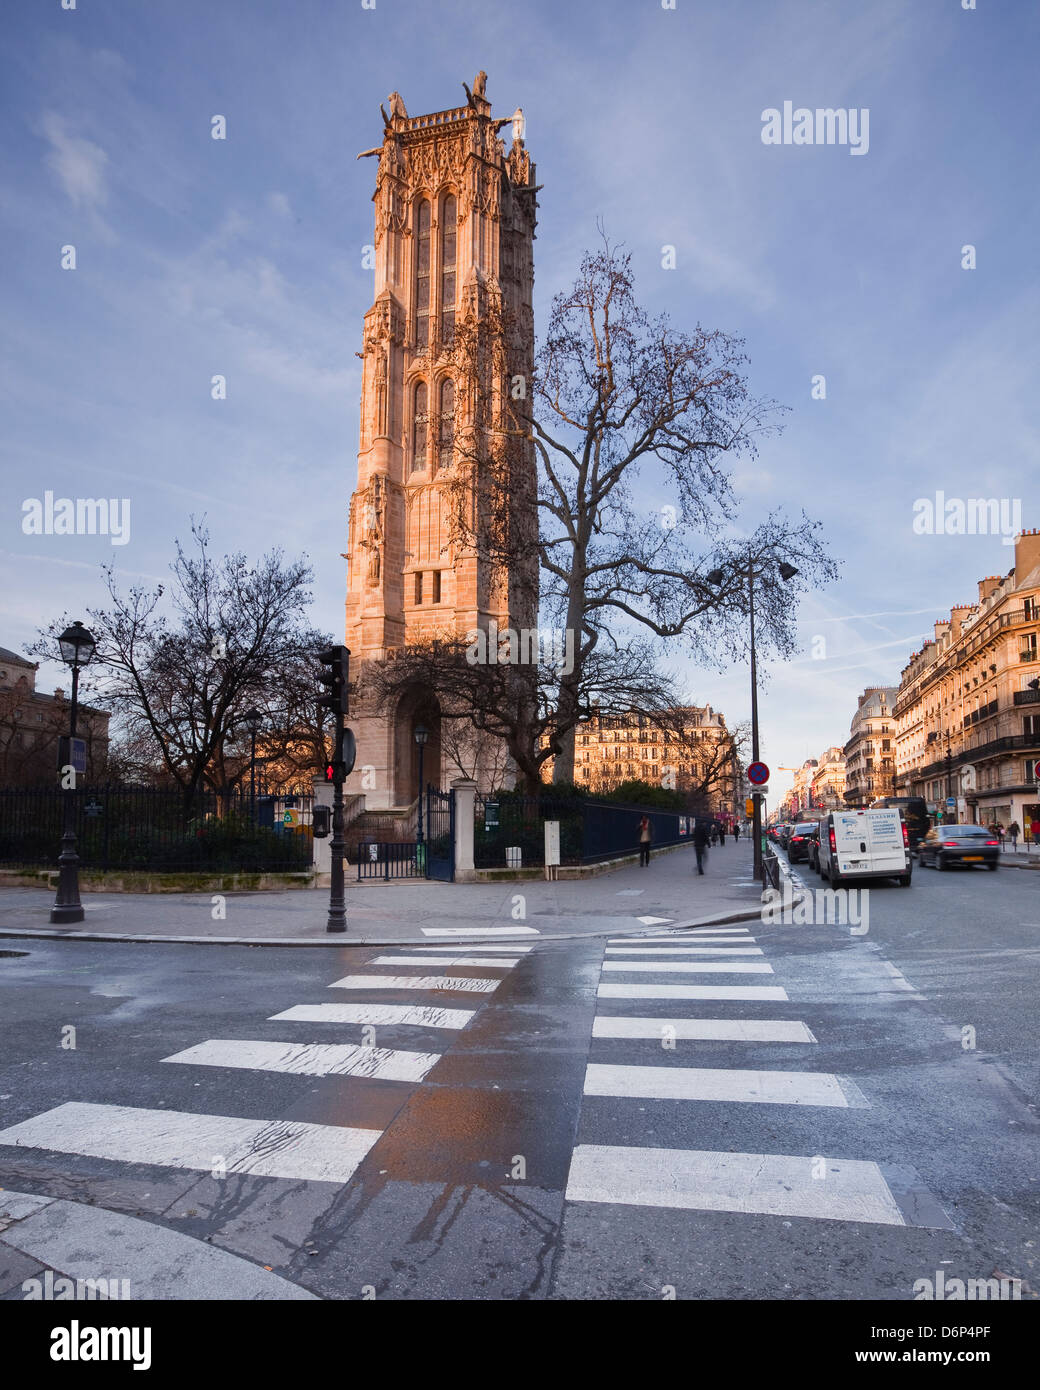 The gothic Tour Saint Jacques, Paris, France, Europe - Stock Image